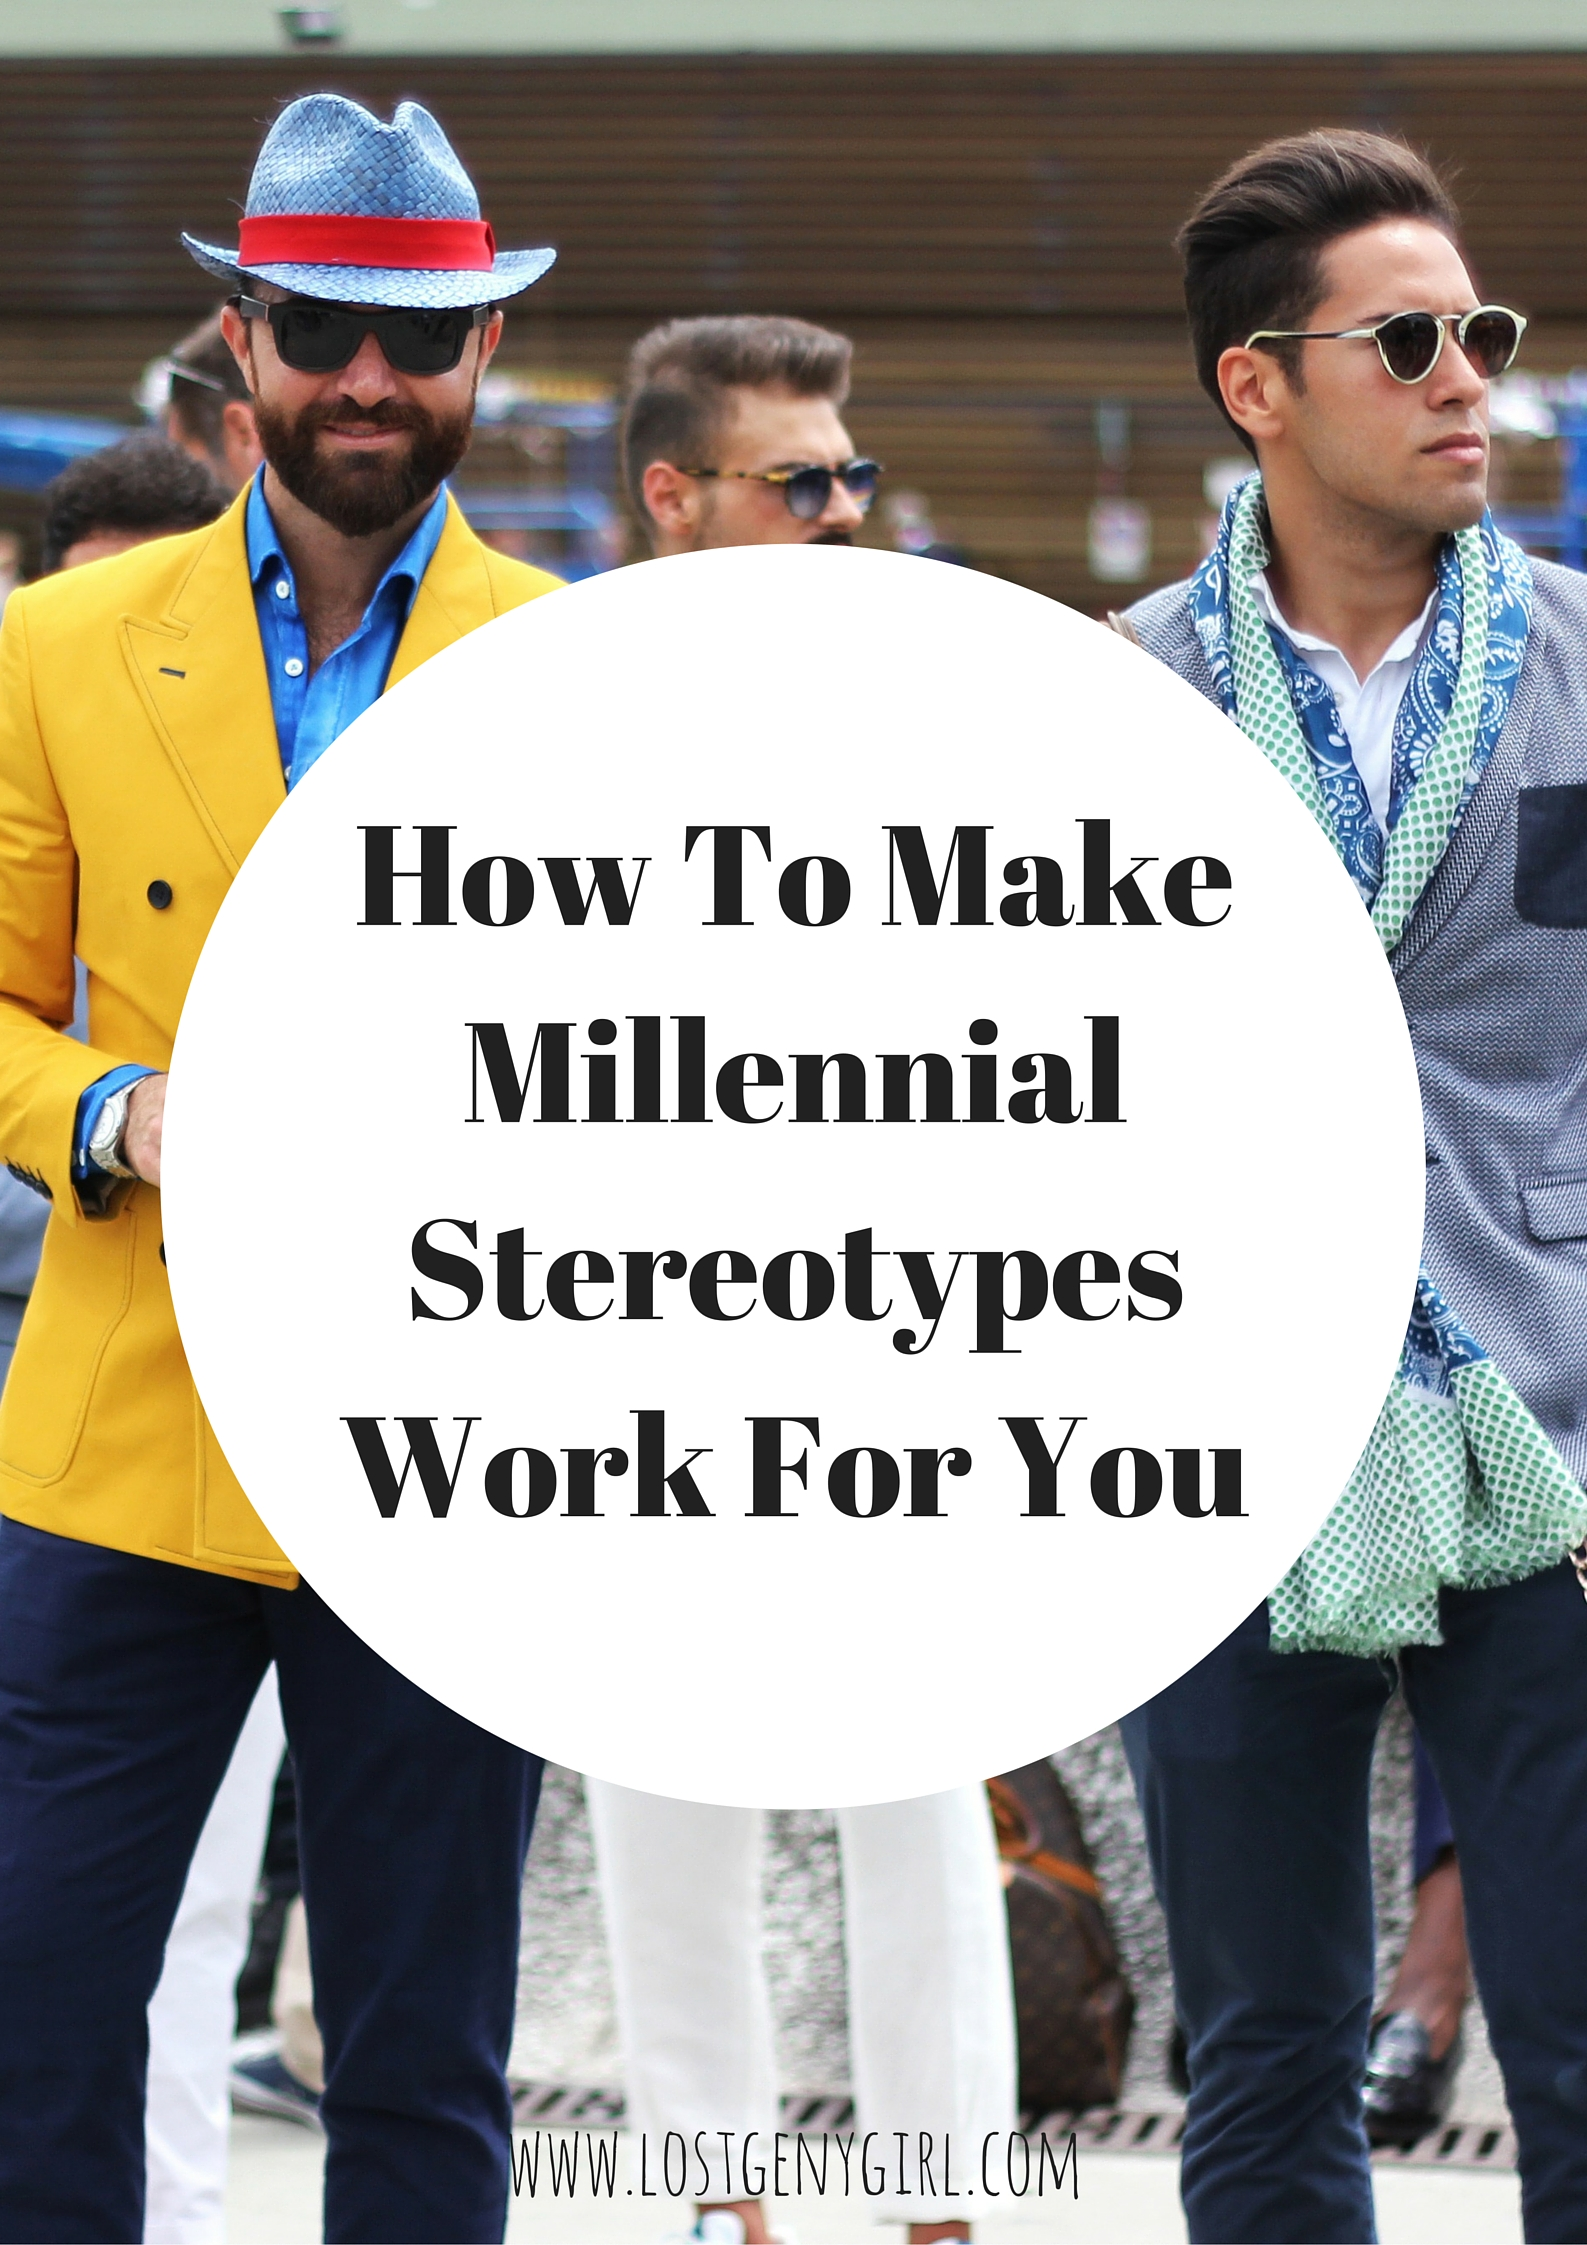 How to Make Millennial Stereotypes Work For You